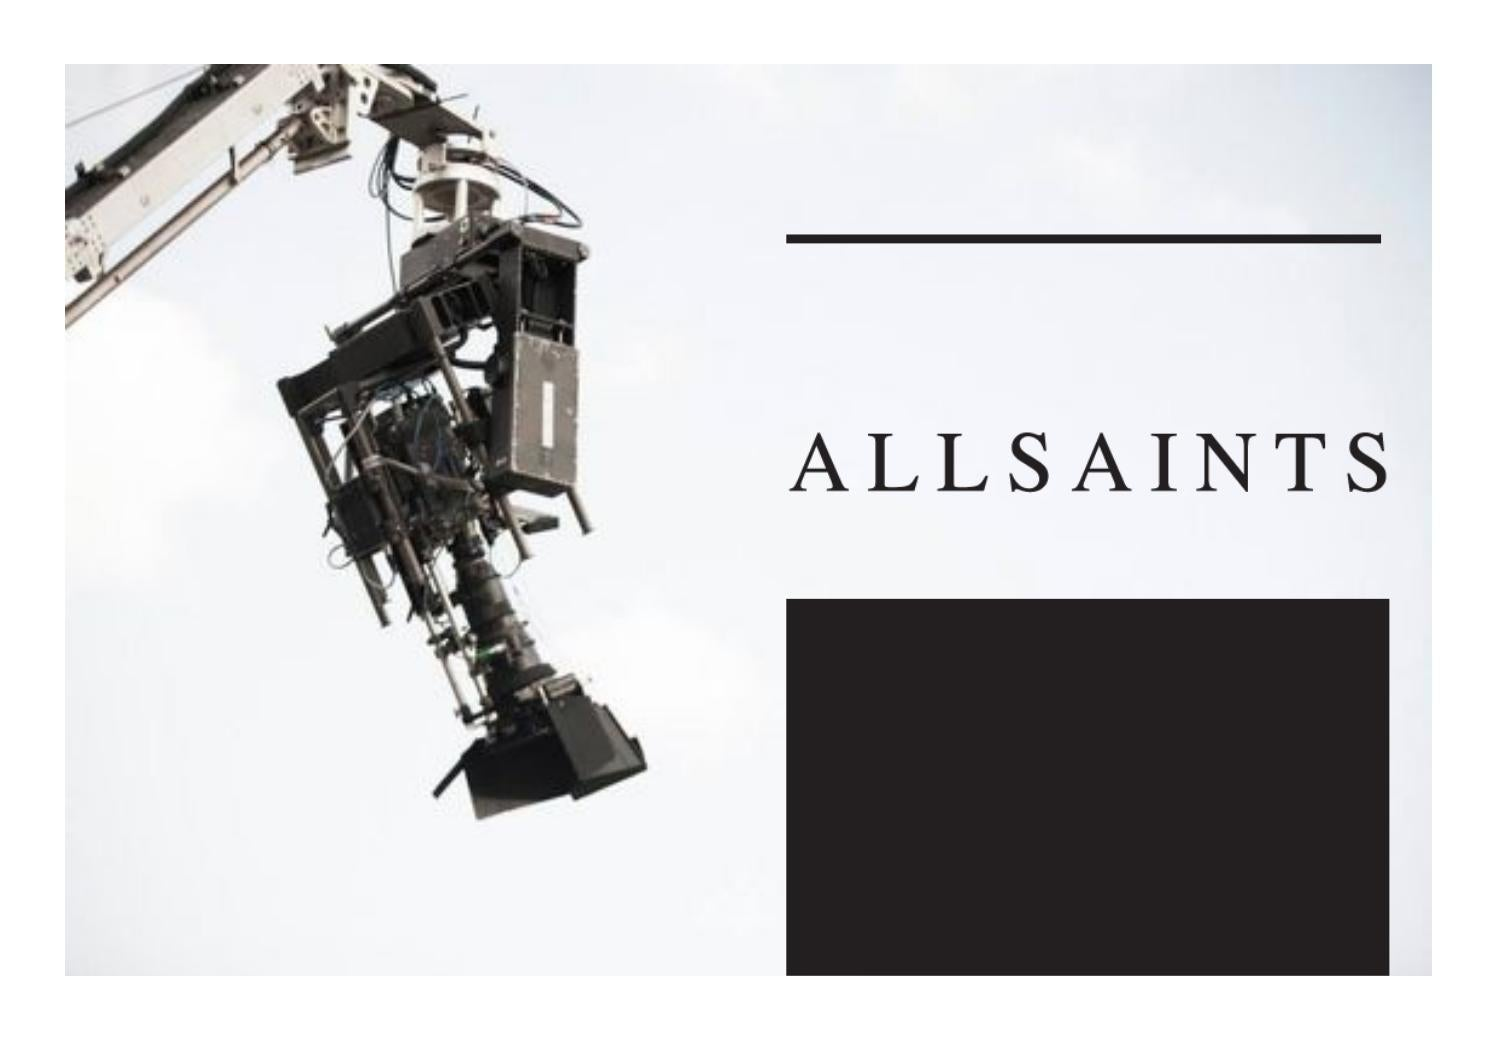 Fashion Promotions Allsaints By Eva Salisbury Issuu Camera Circuit Board Promotiononline Shopping For Promotional